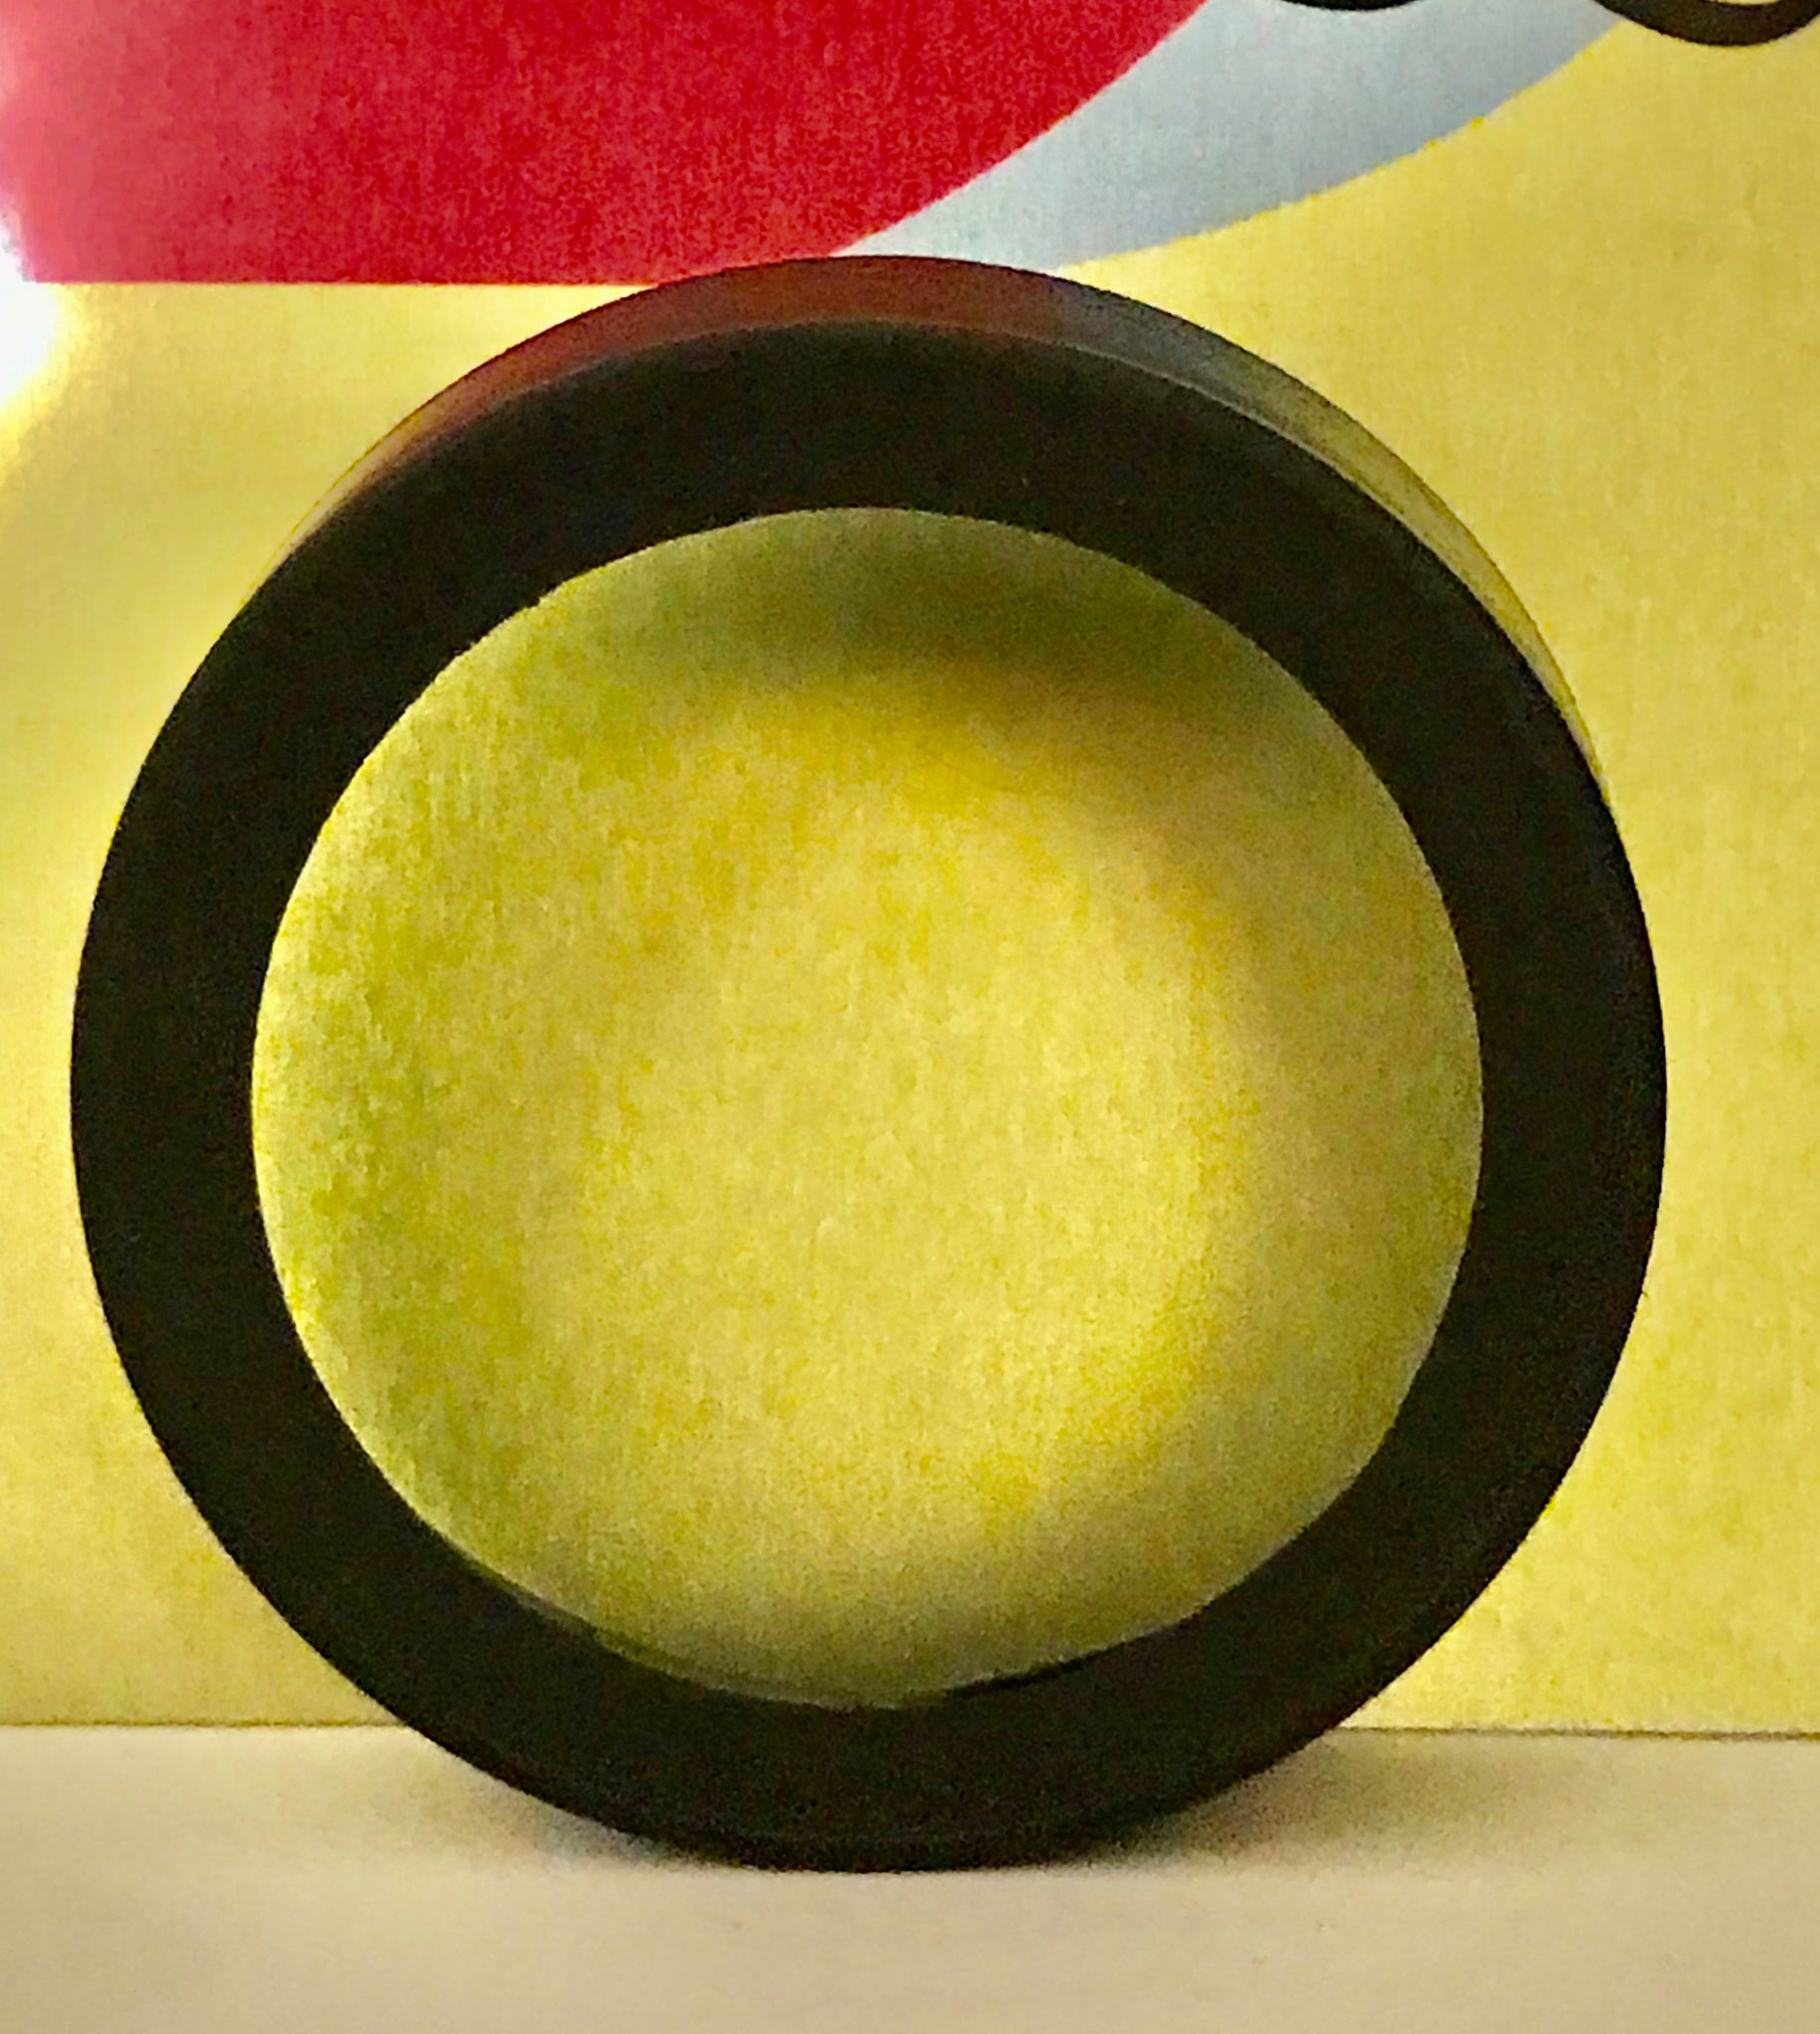 12 Ounce Can Cooler Replacement Ring BLACK